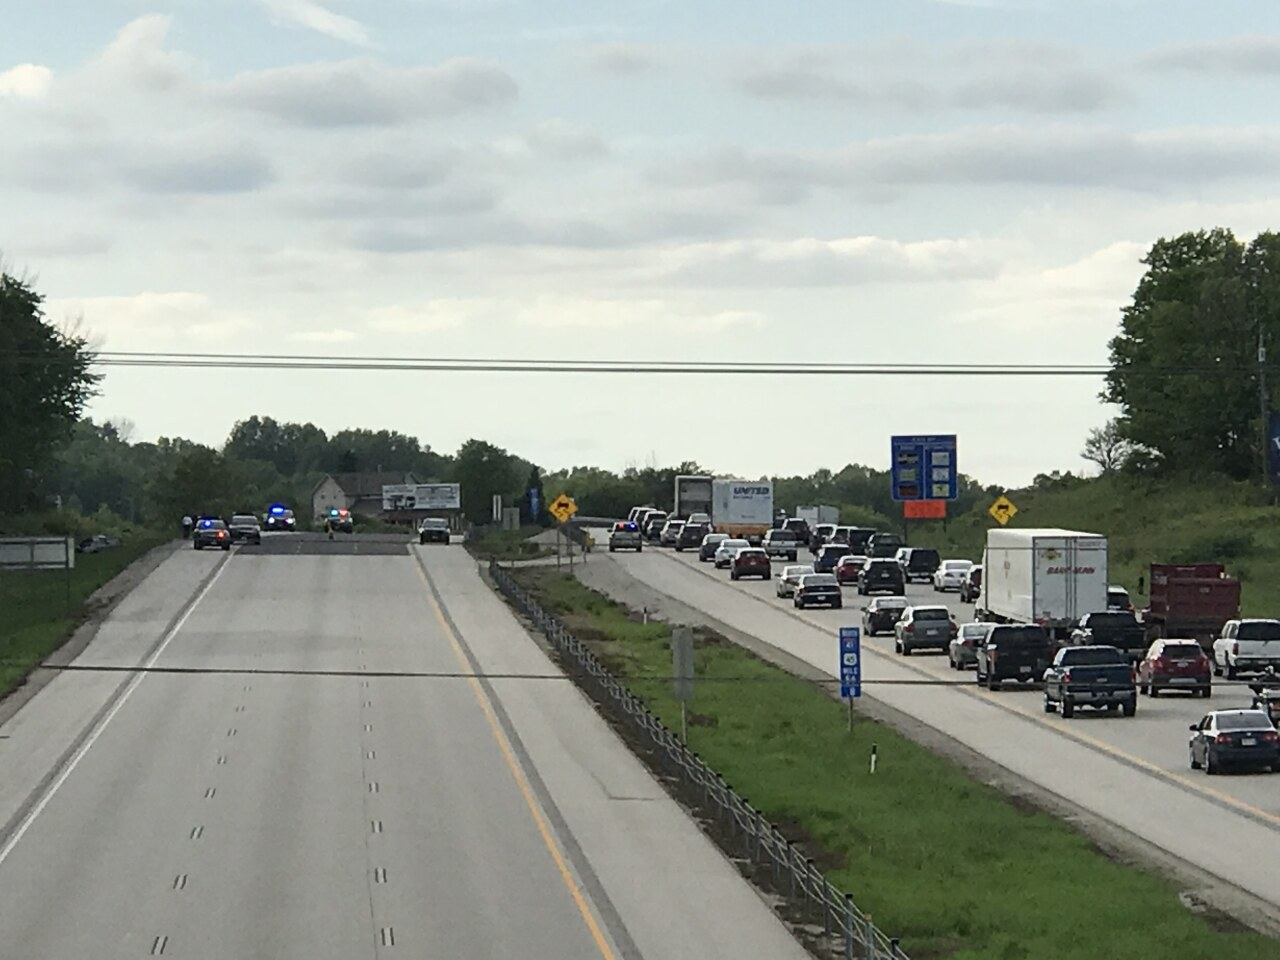 5 brothers hurt in serious crash on I-41 in Germantown